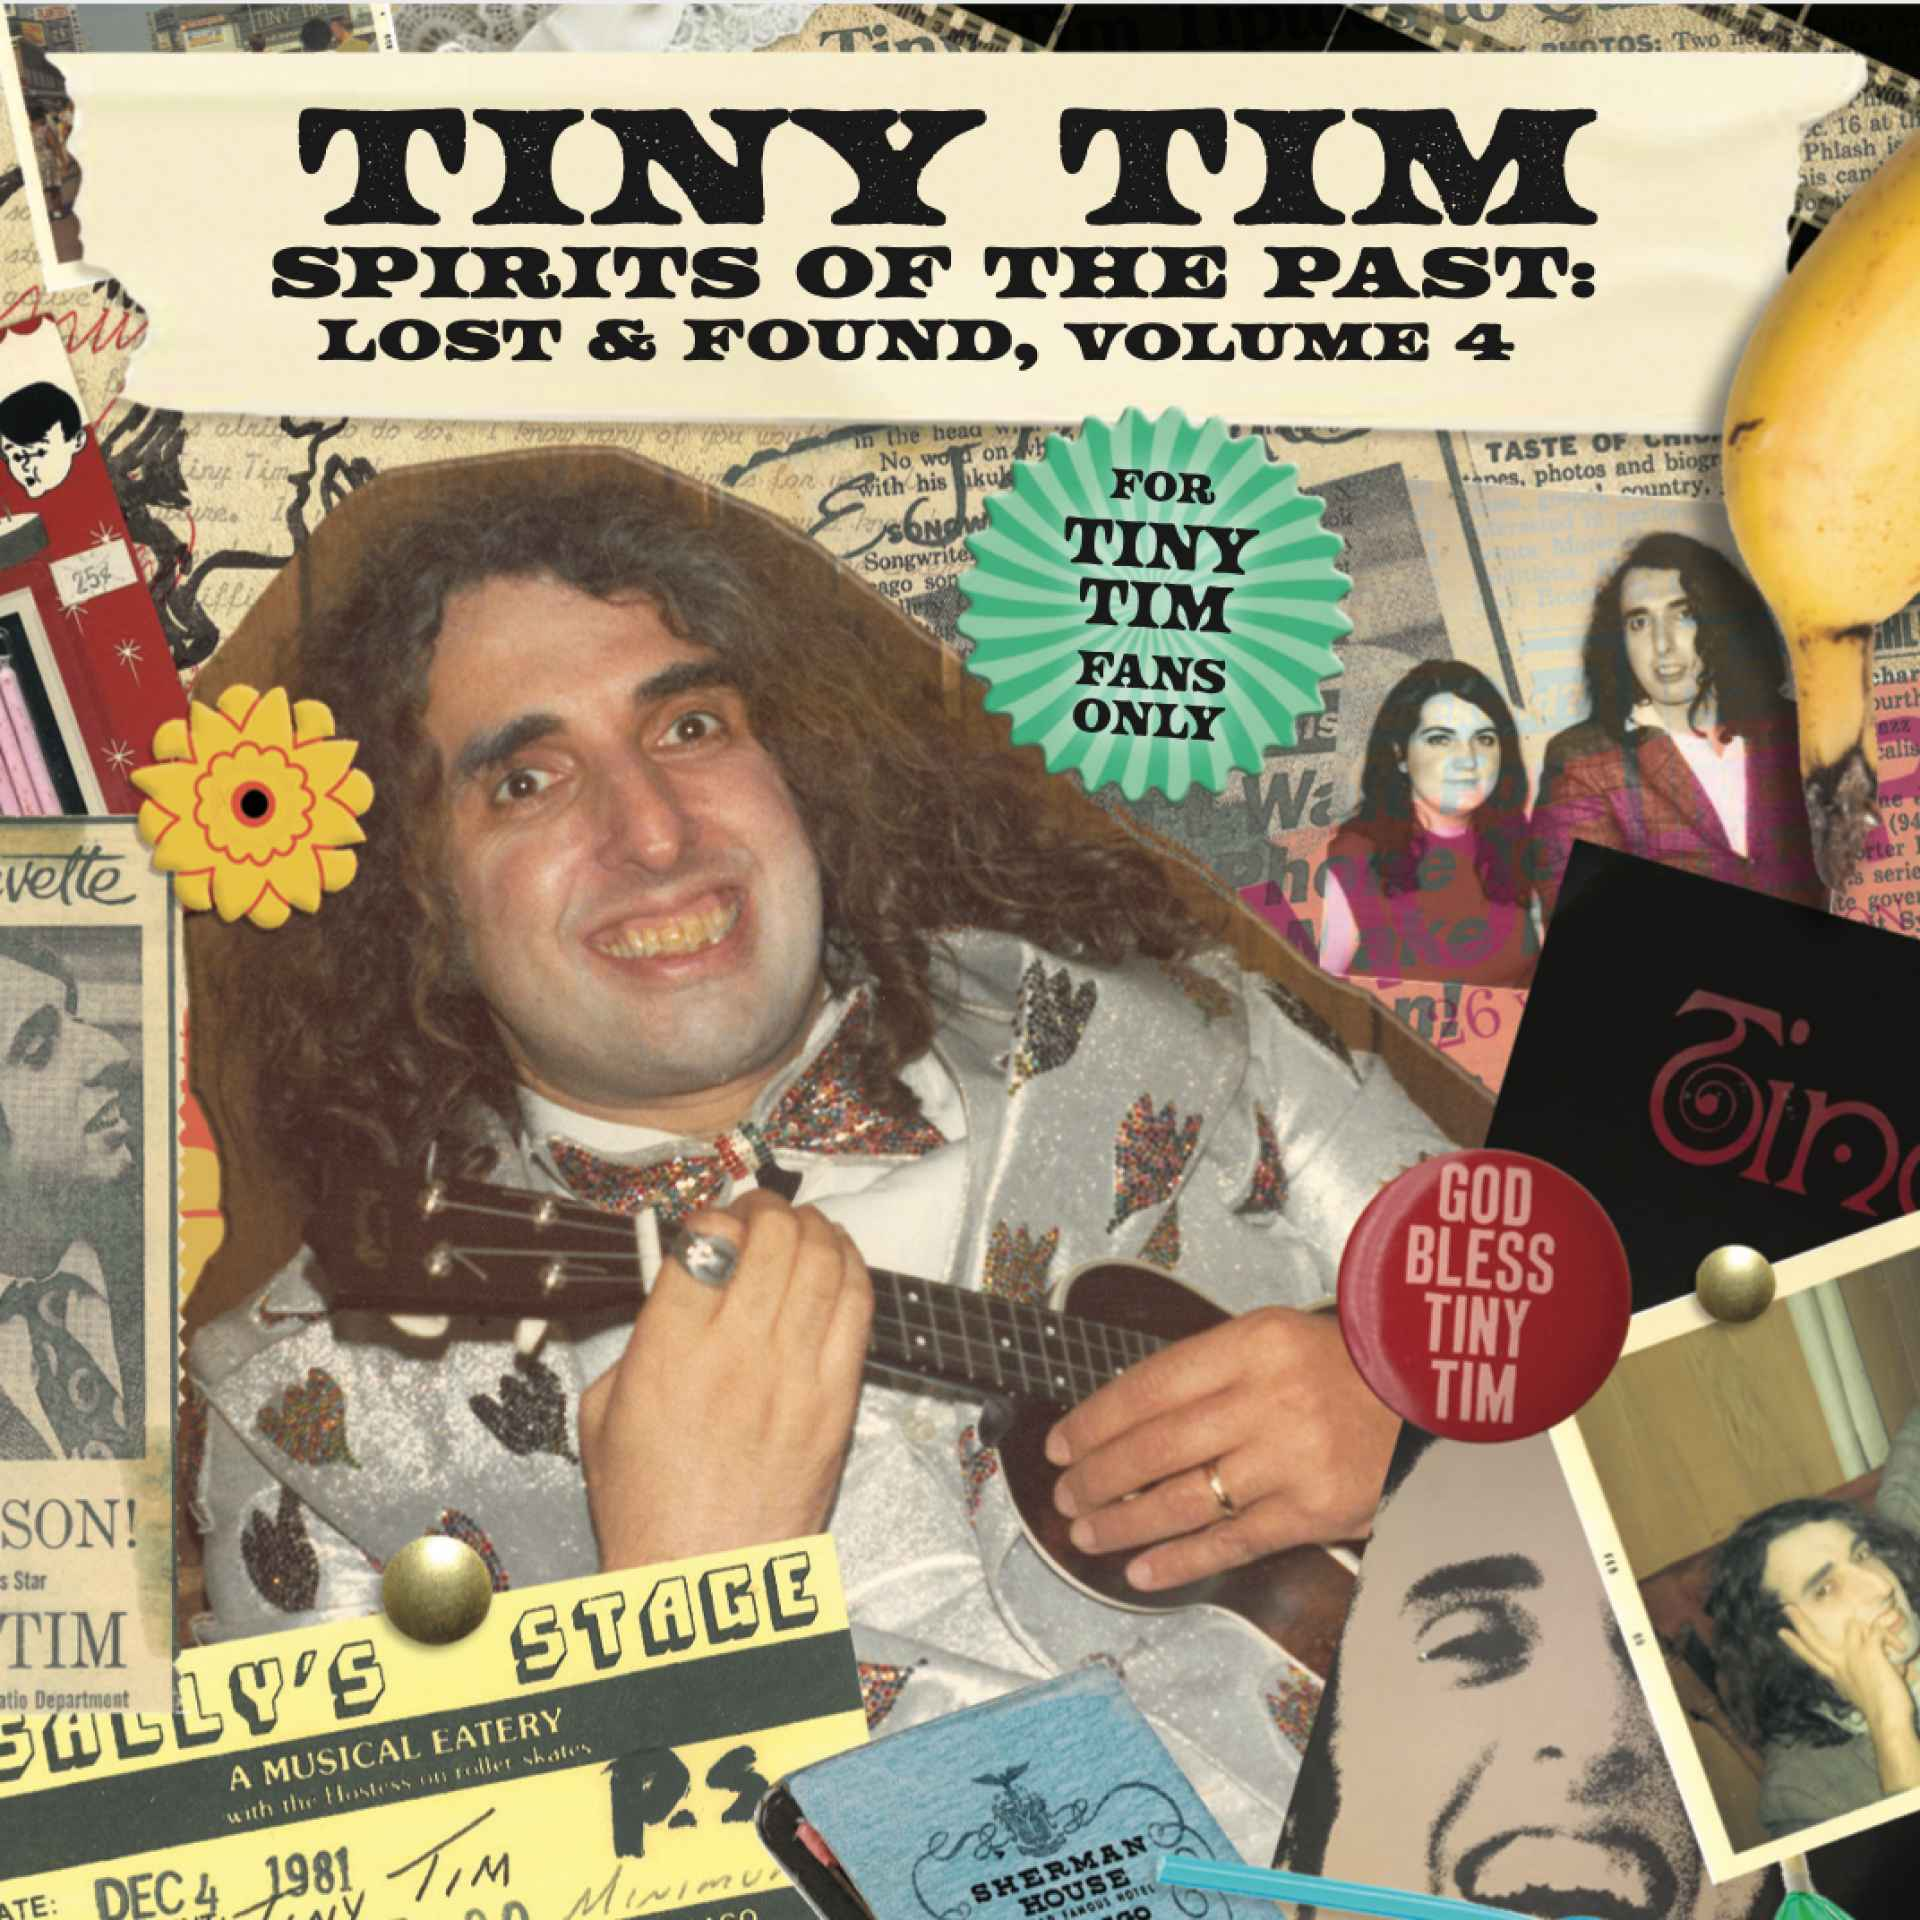 Tiny Tim - Spirits Of The Past: Lost & Found Volume 4 CD